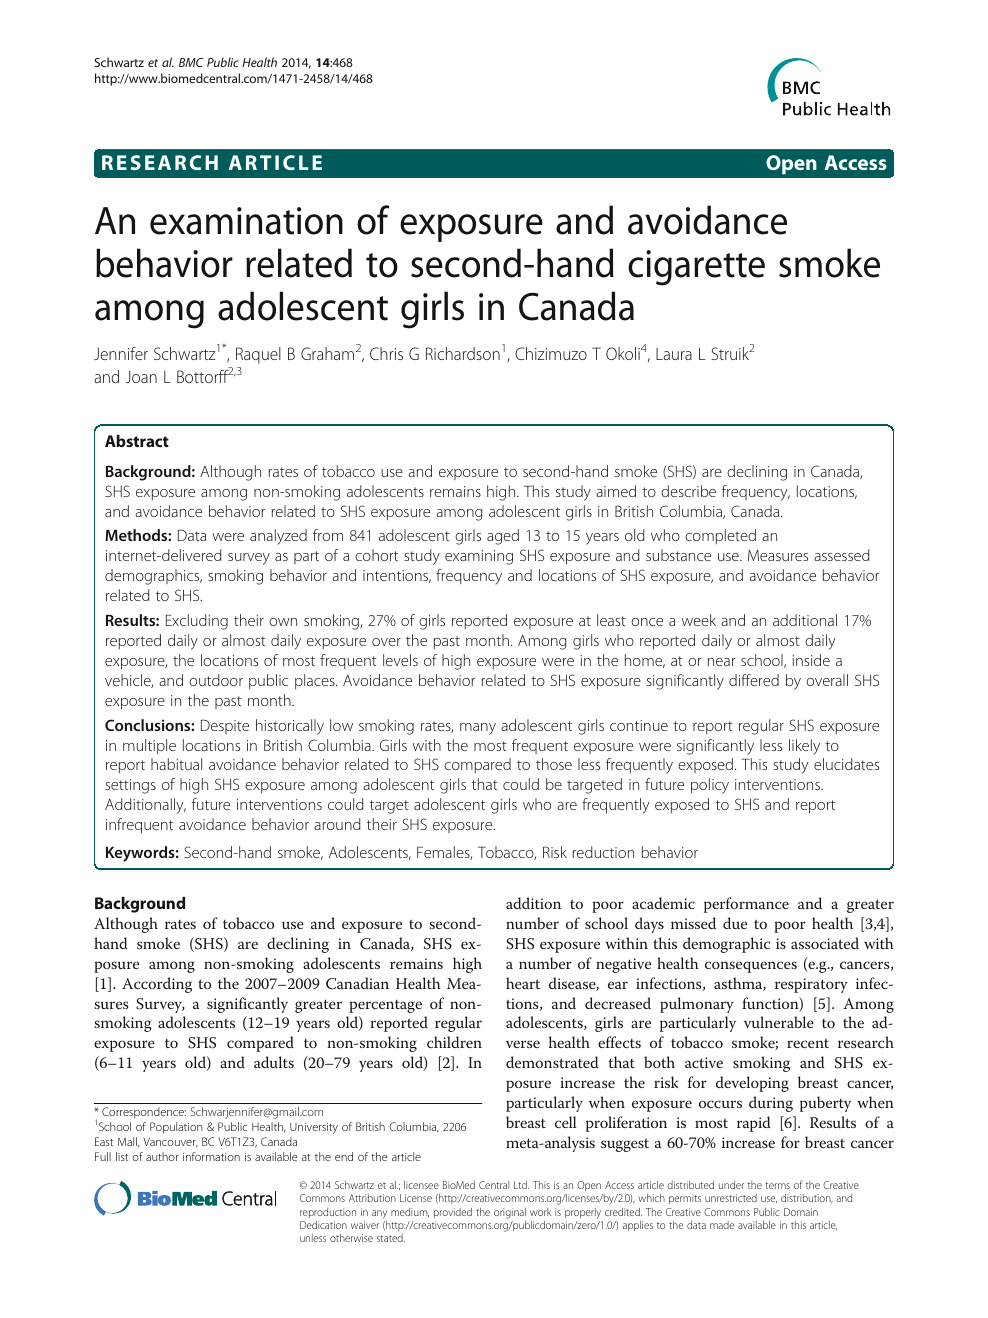 An examination of exposure and avoidance behavior related to